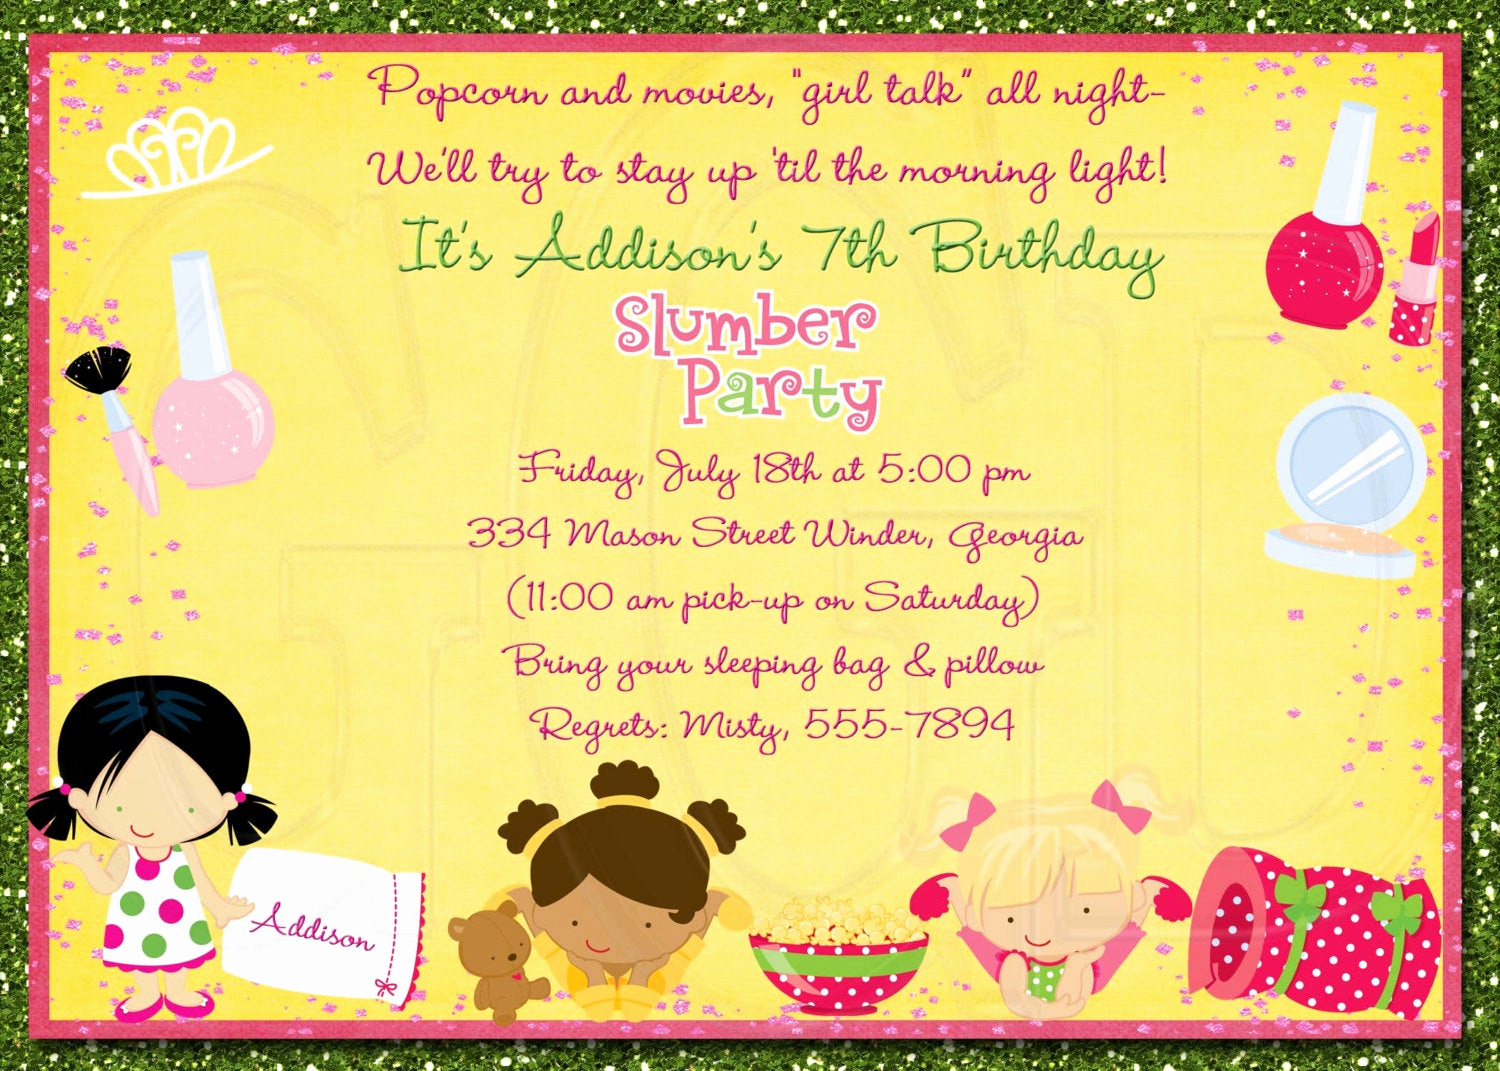 Pajama Party Invitation Wording Unique Slumber Party Invitation Pajama Party Digital File